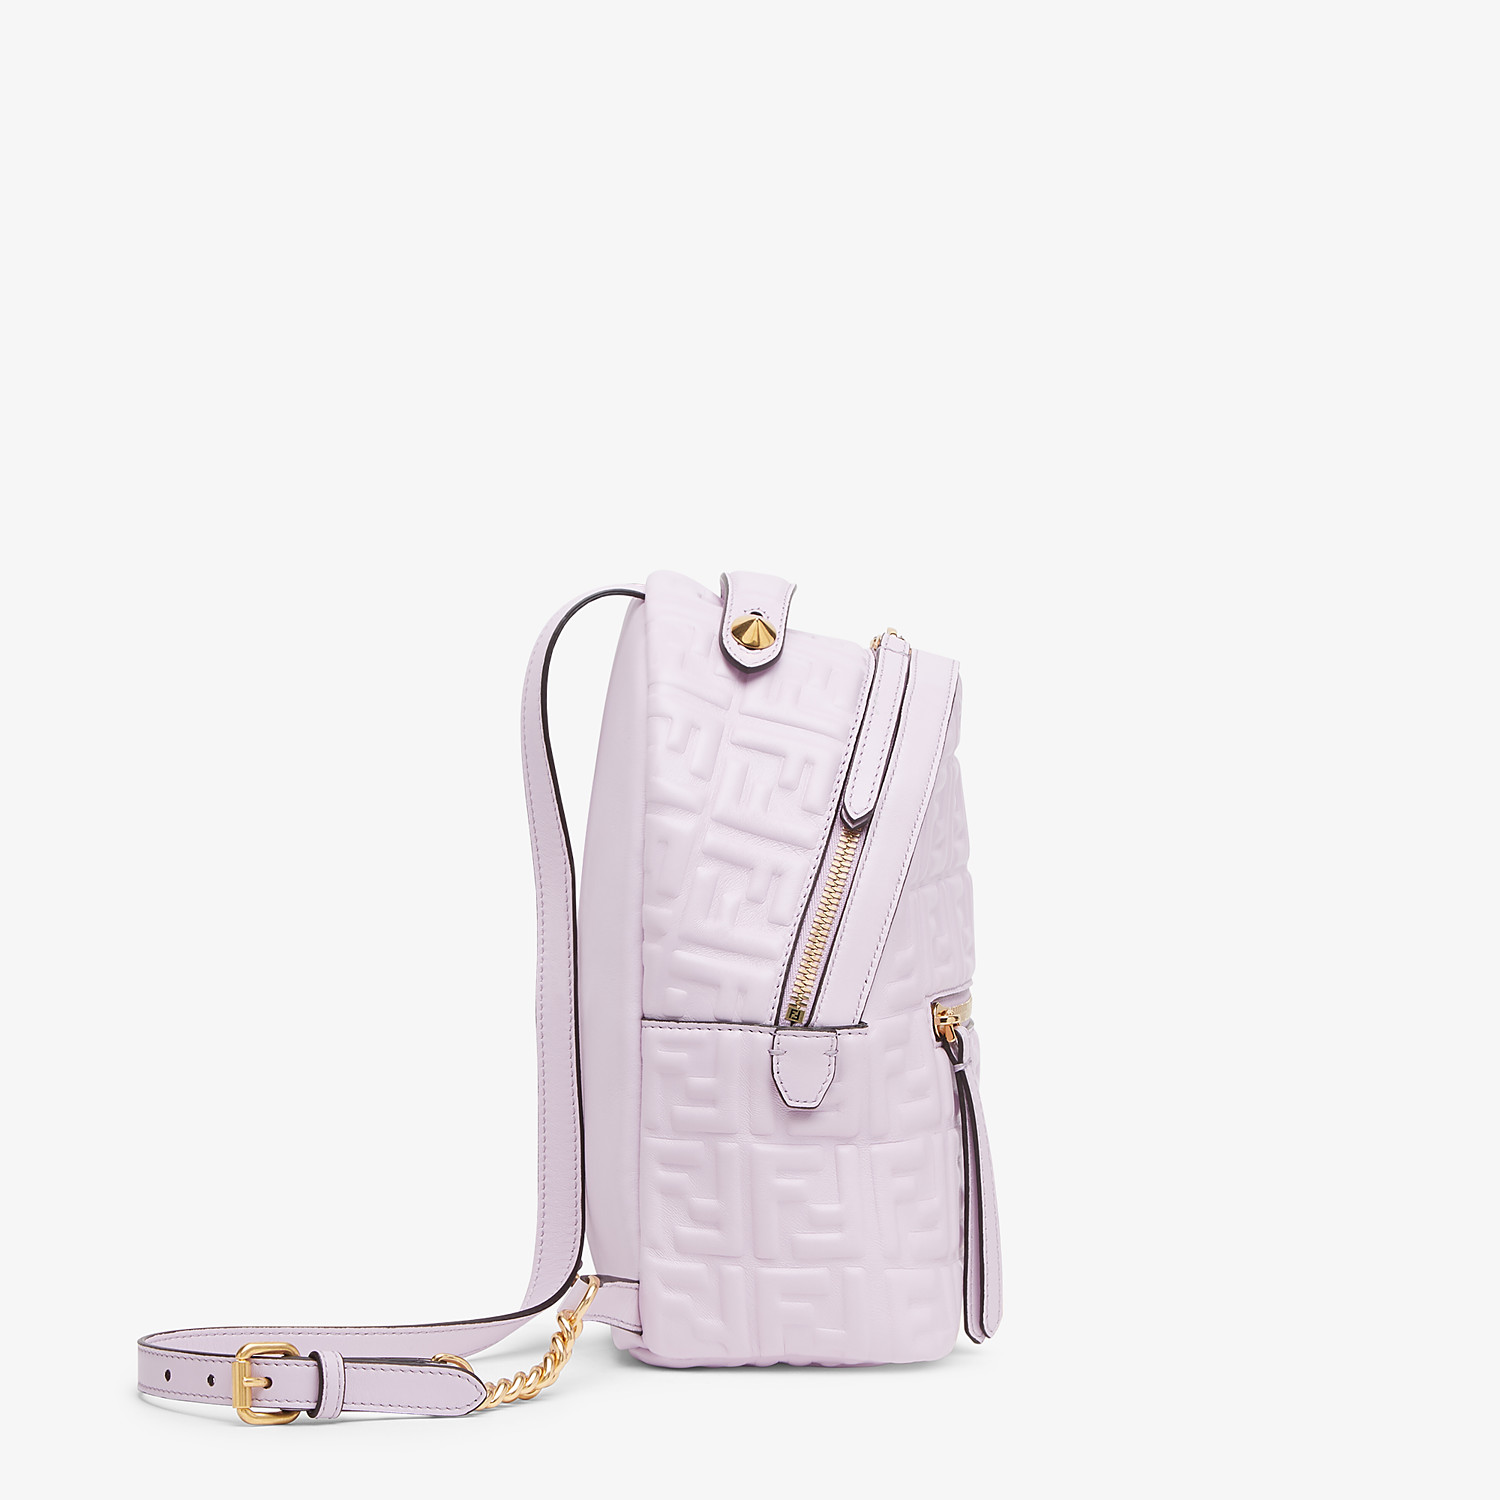 FENDI MINI BACKPACK - Lilac leather FF backpack - view 3 detail